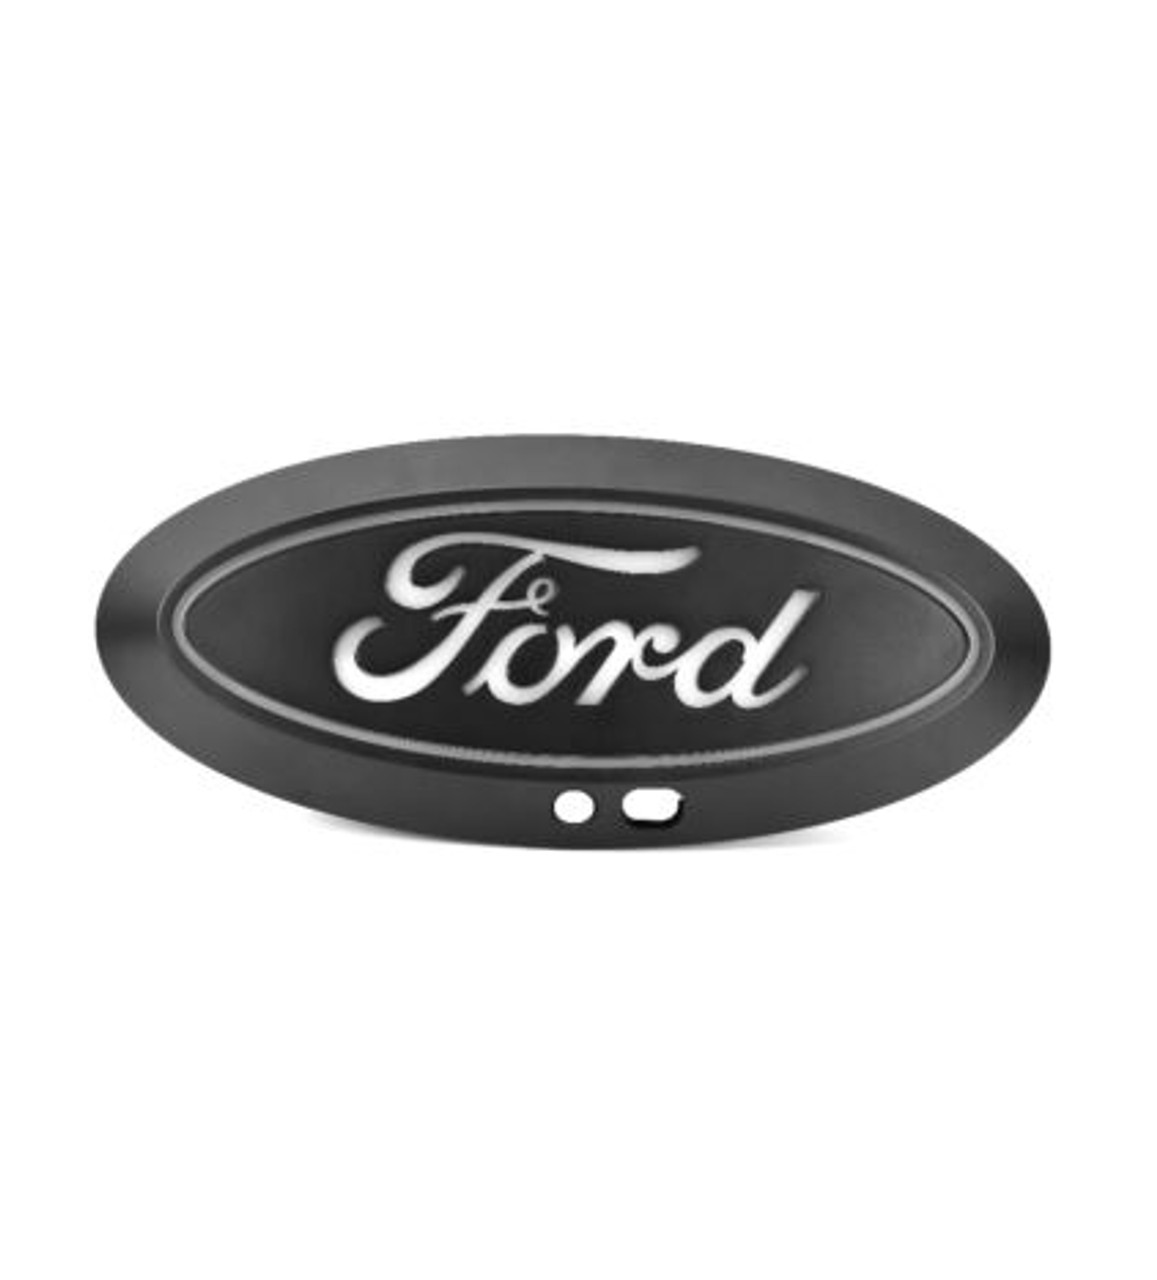 PUT92603, 2018 - 2019 Ford F-150 Front Emblem - Without camera & Style package. Fits any model with appearance package STX, Lariat, King Ranch & Platinum